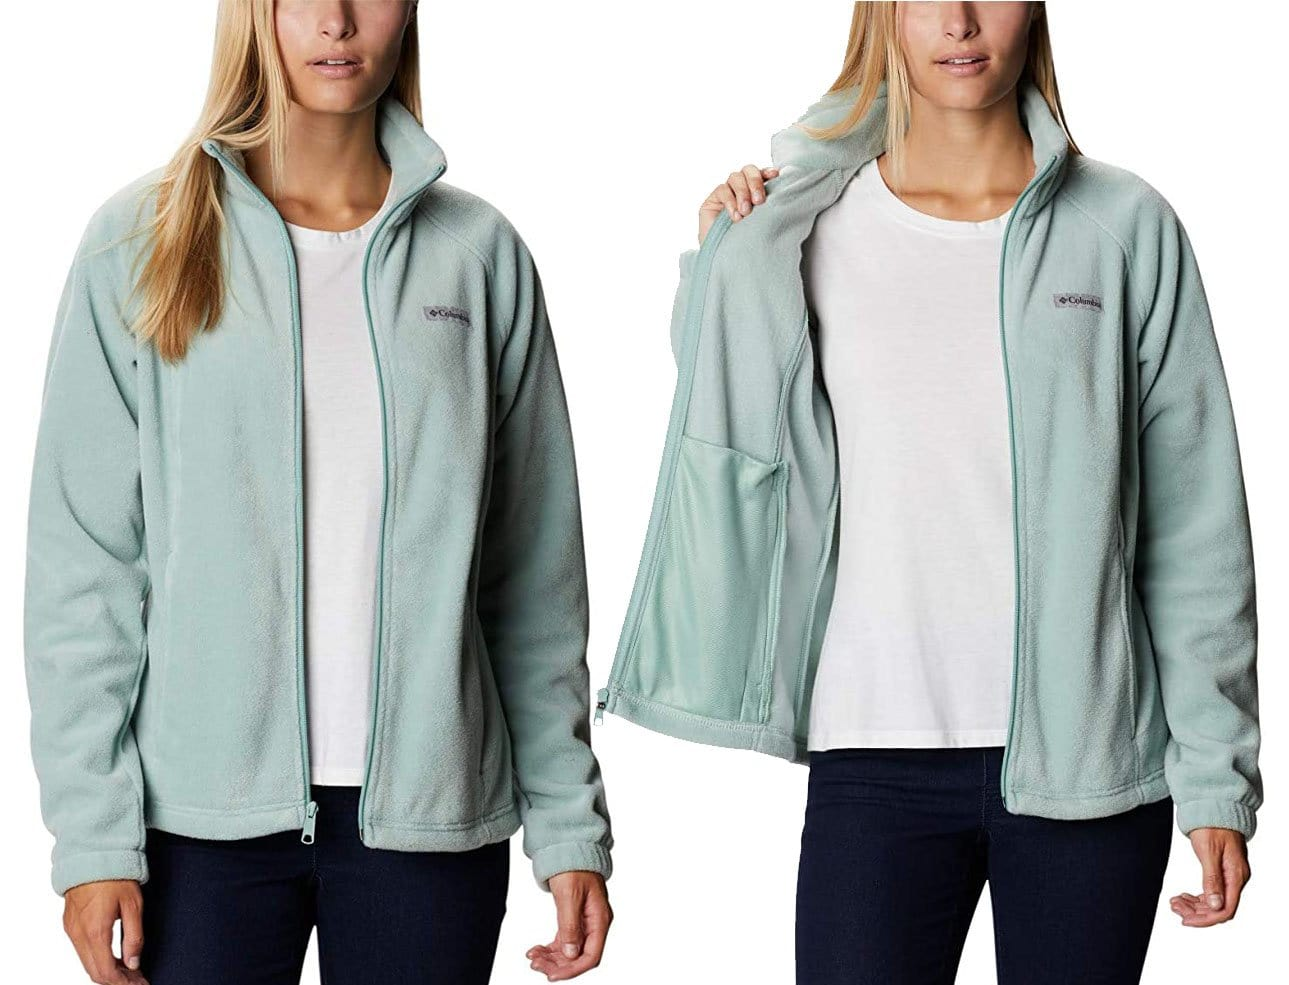 The Benton Springs is a stylish yet functional jacket made of soft fleece fabric